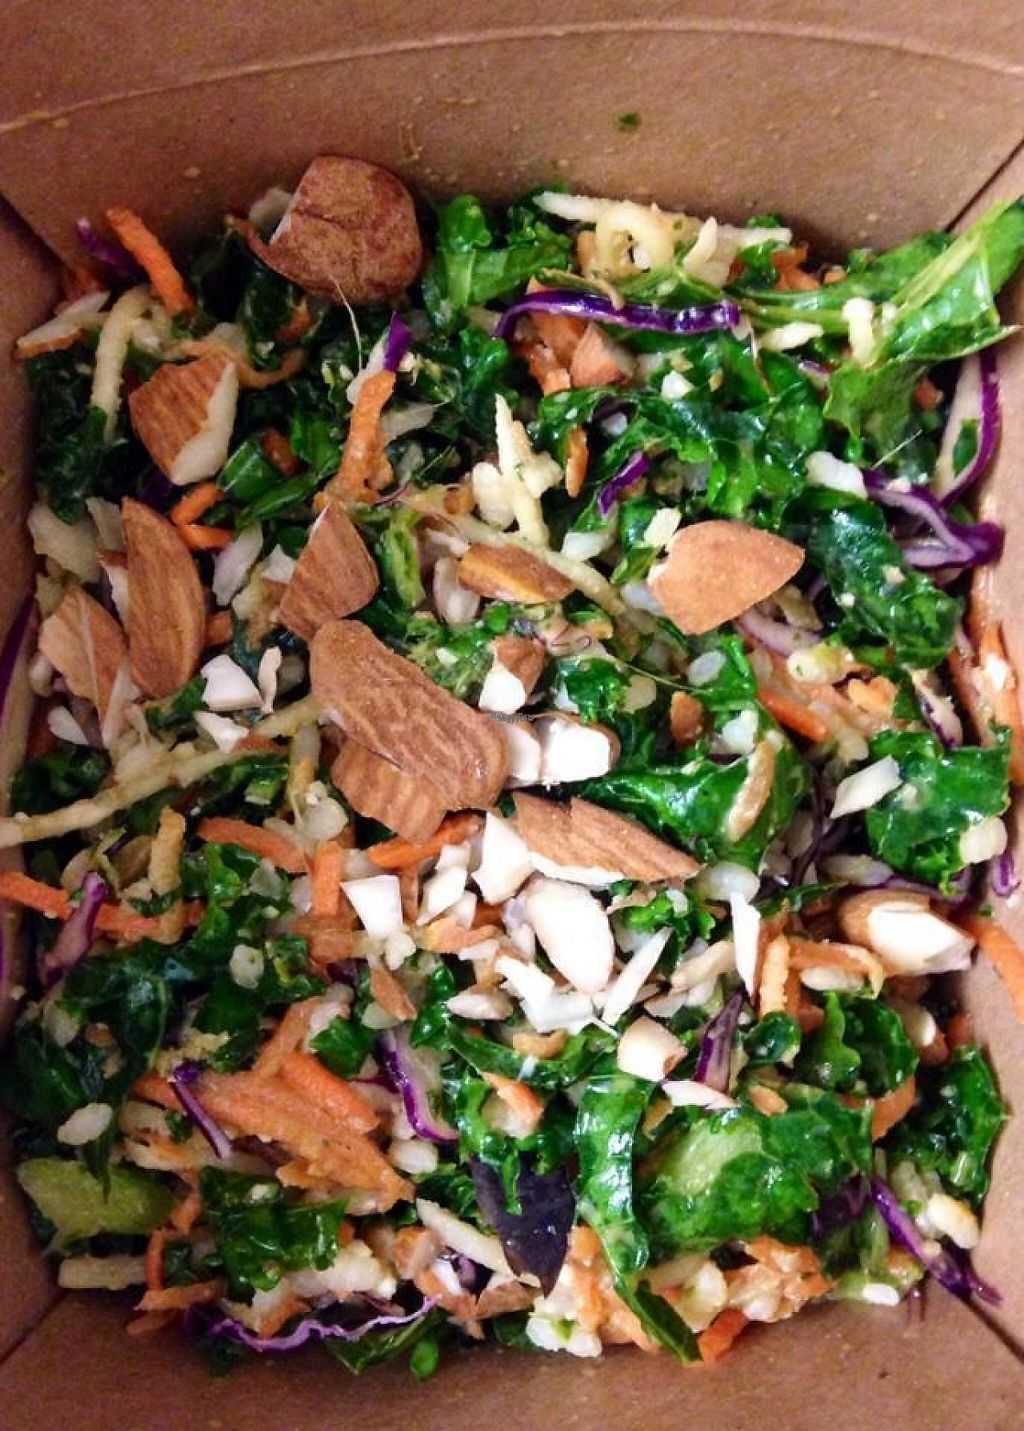 """Photo of Green Bear Coffee - Peytral  by <a href=""""/members/profile/community"""">community</a> <br/>kale salad  <br/> December 14, 2016  - <a href='/contact/abuse/image/83260/200886'>Report</a>"""